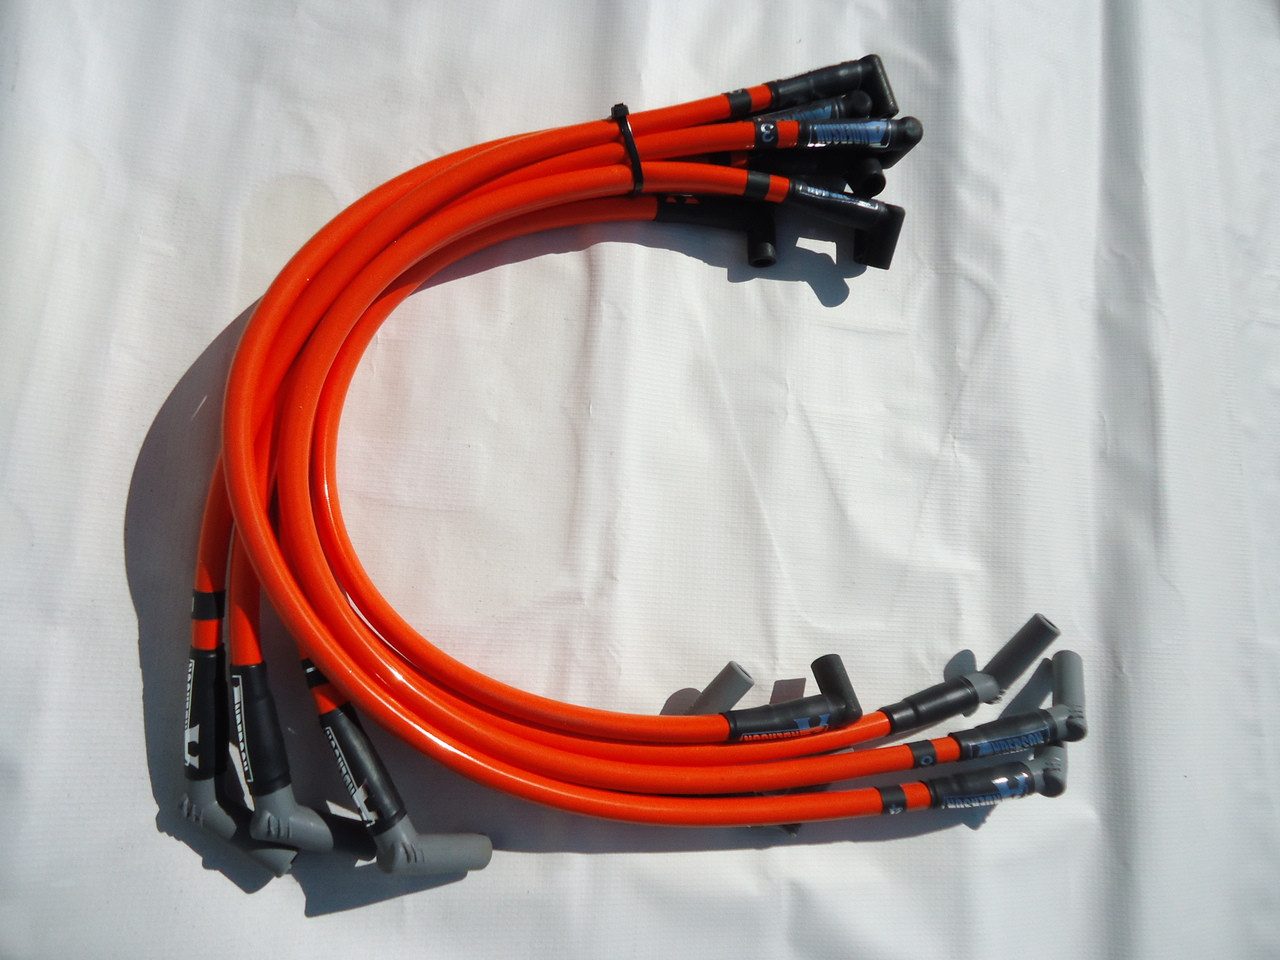 hight resolution of anderson super 40 spark plug wires competition orange fits 86 93 5 0l mustang anderson ford motorsport